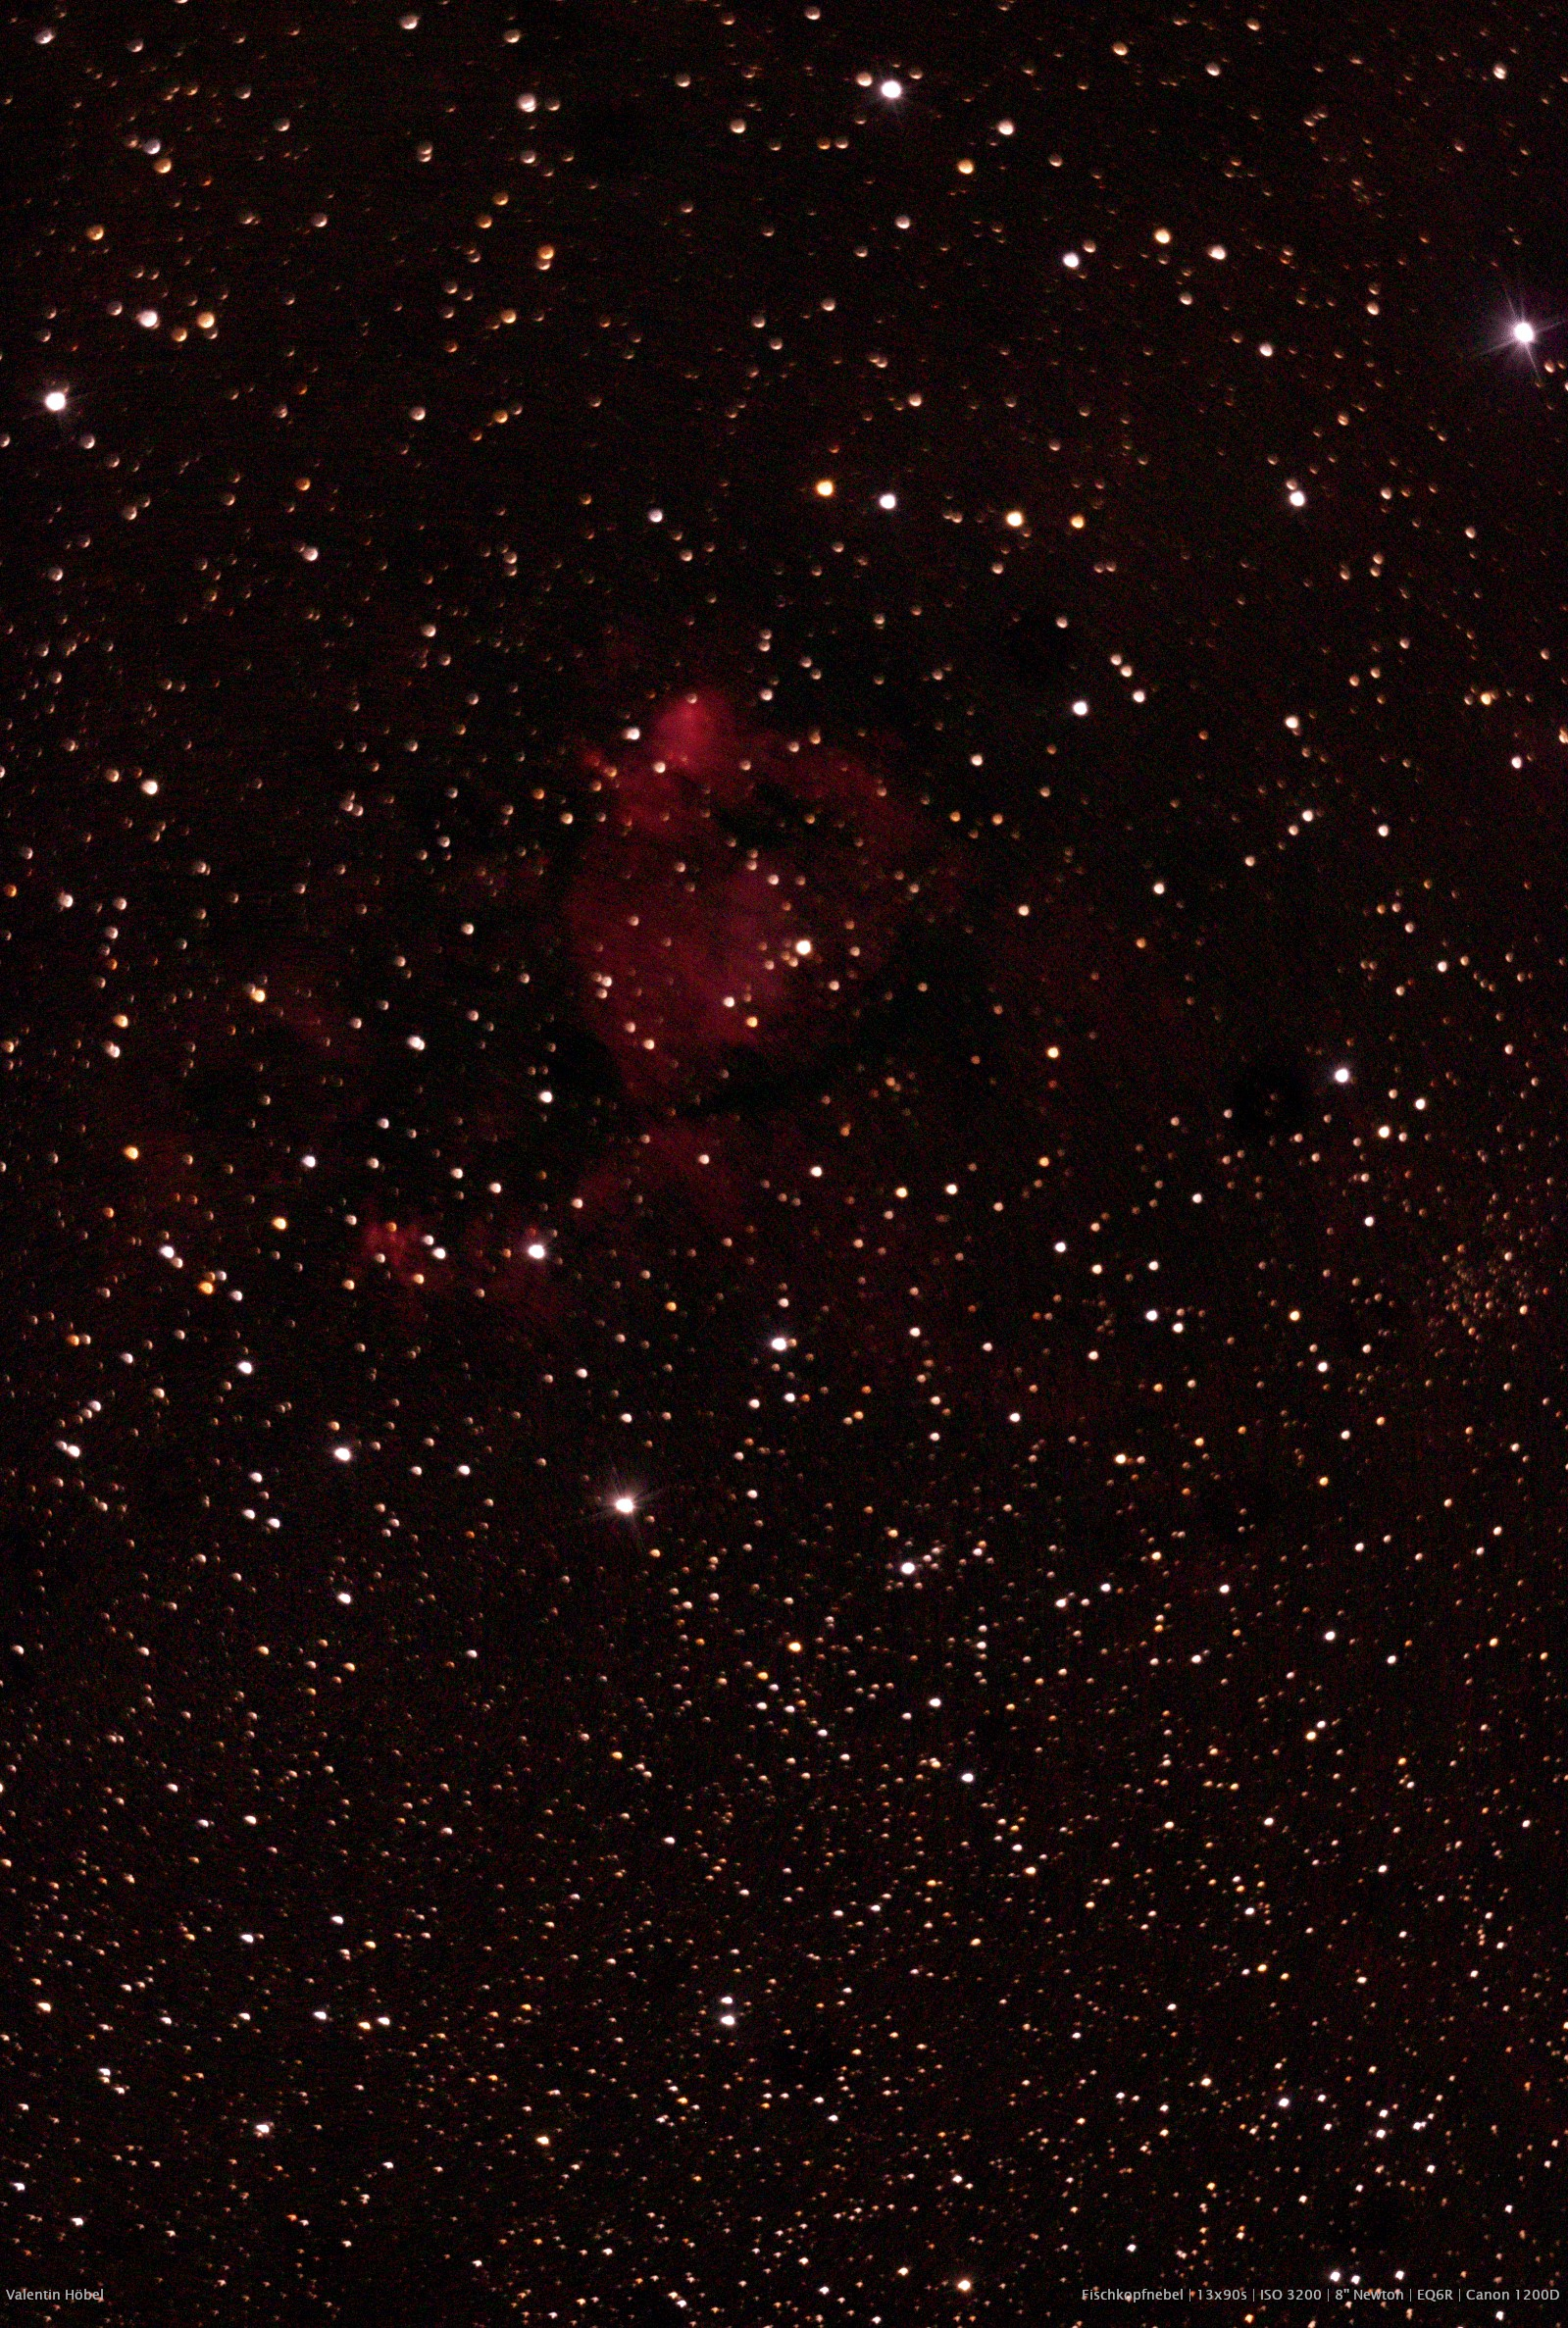 My first DSOs, a dream came true - Imaging - Deep Sky - Stargazers